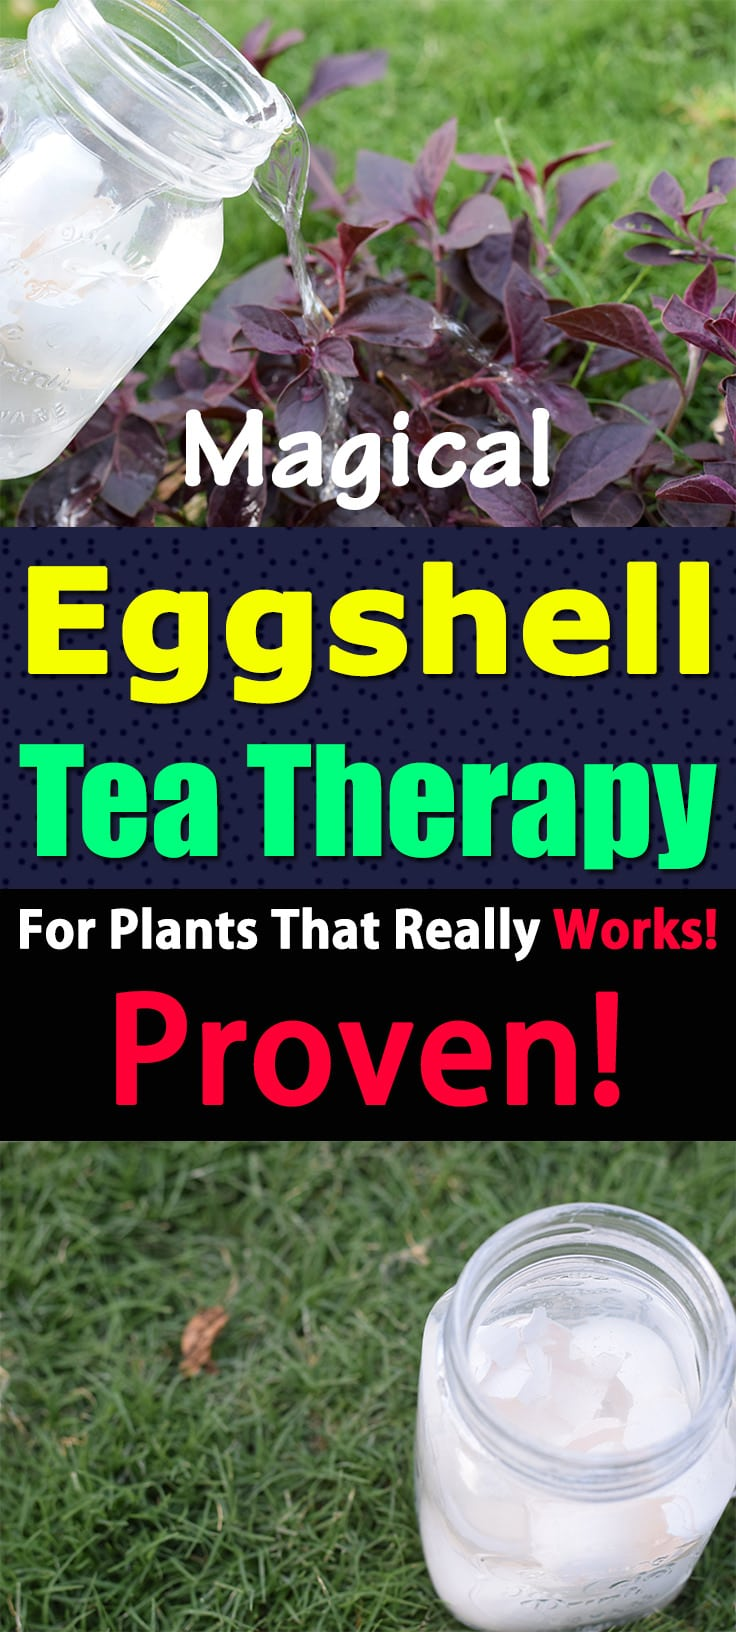 This eggshell tea recipe for plants is proven in the lab test. It works! Learn everything about it in this informative article.